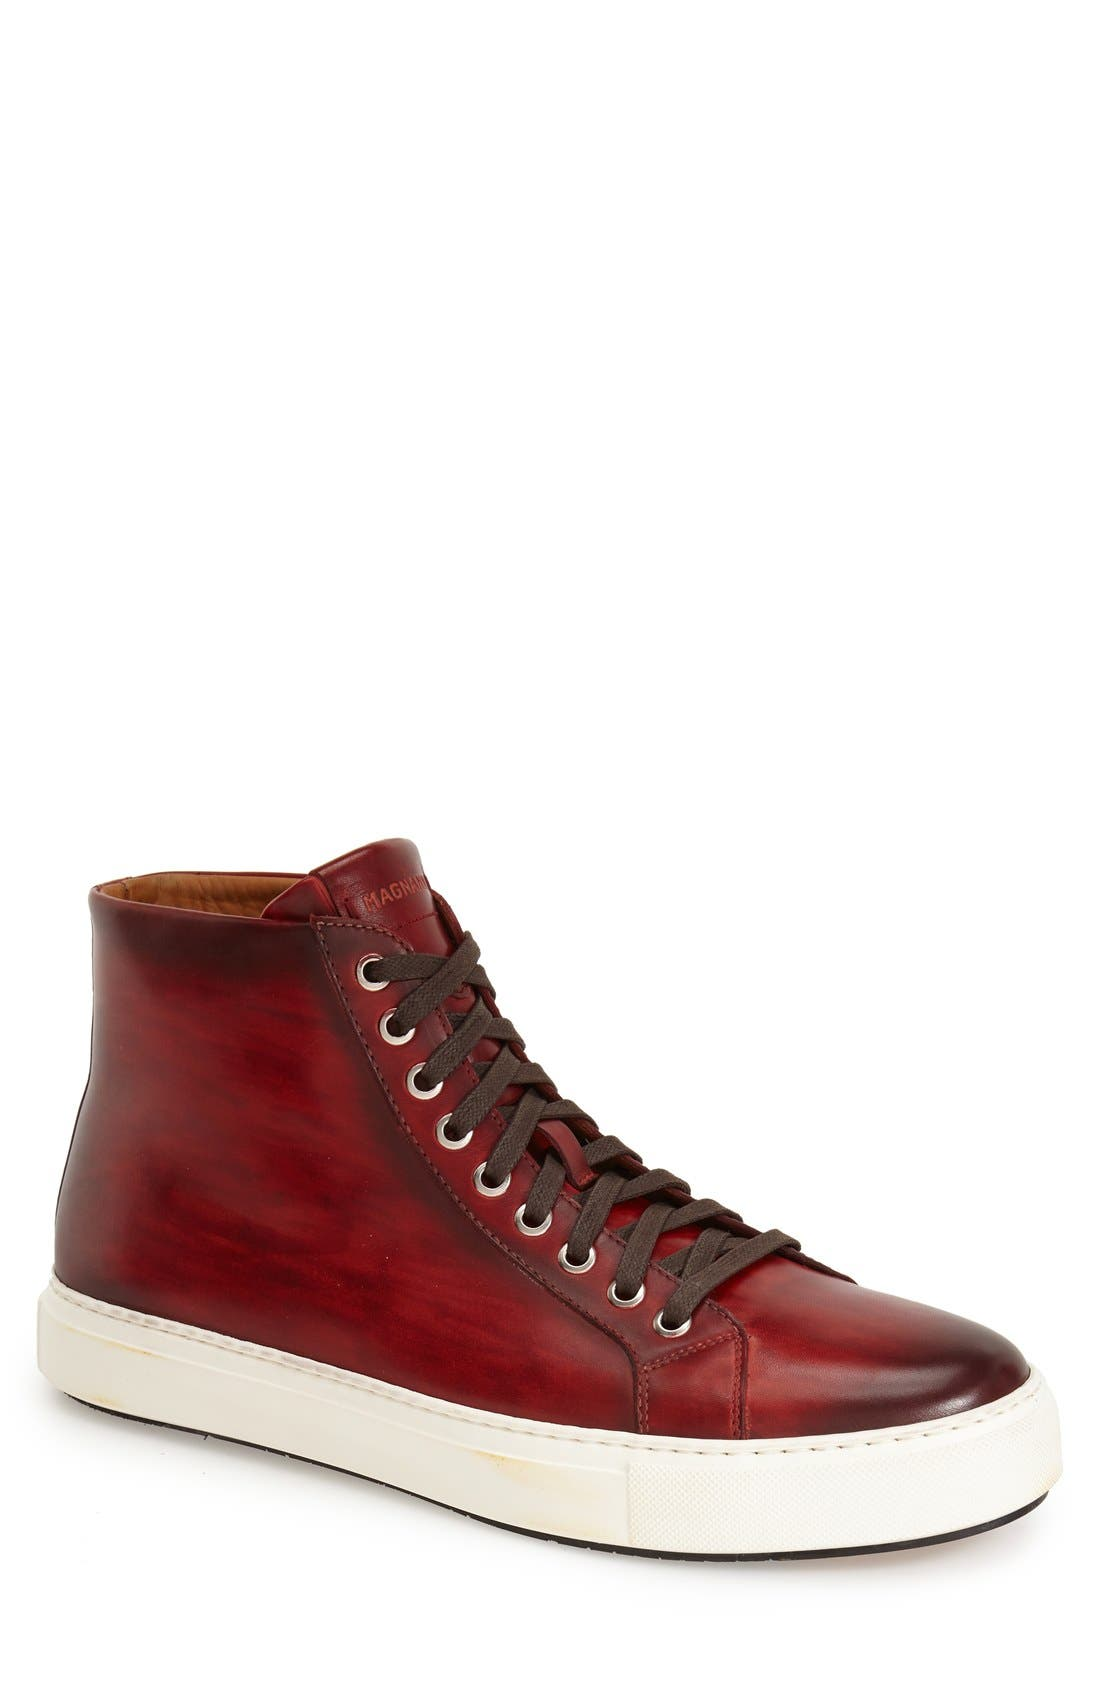 MAGNANNI Brando High Top Sneaker